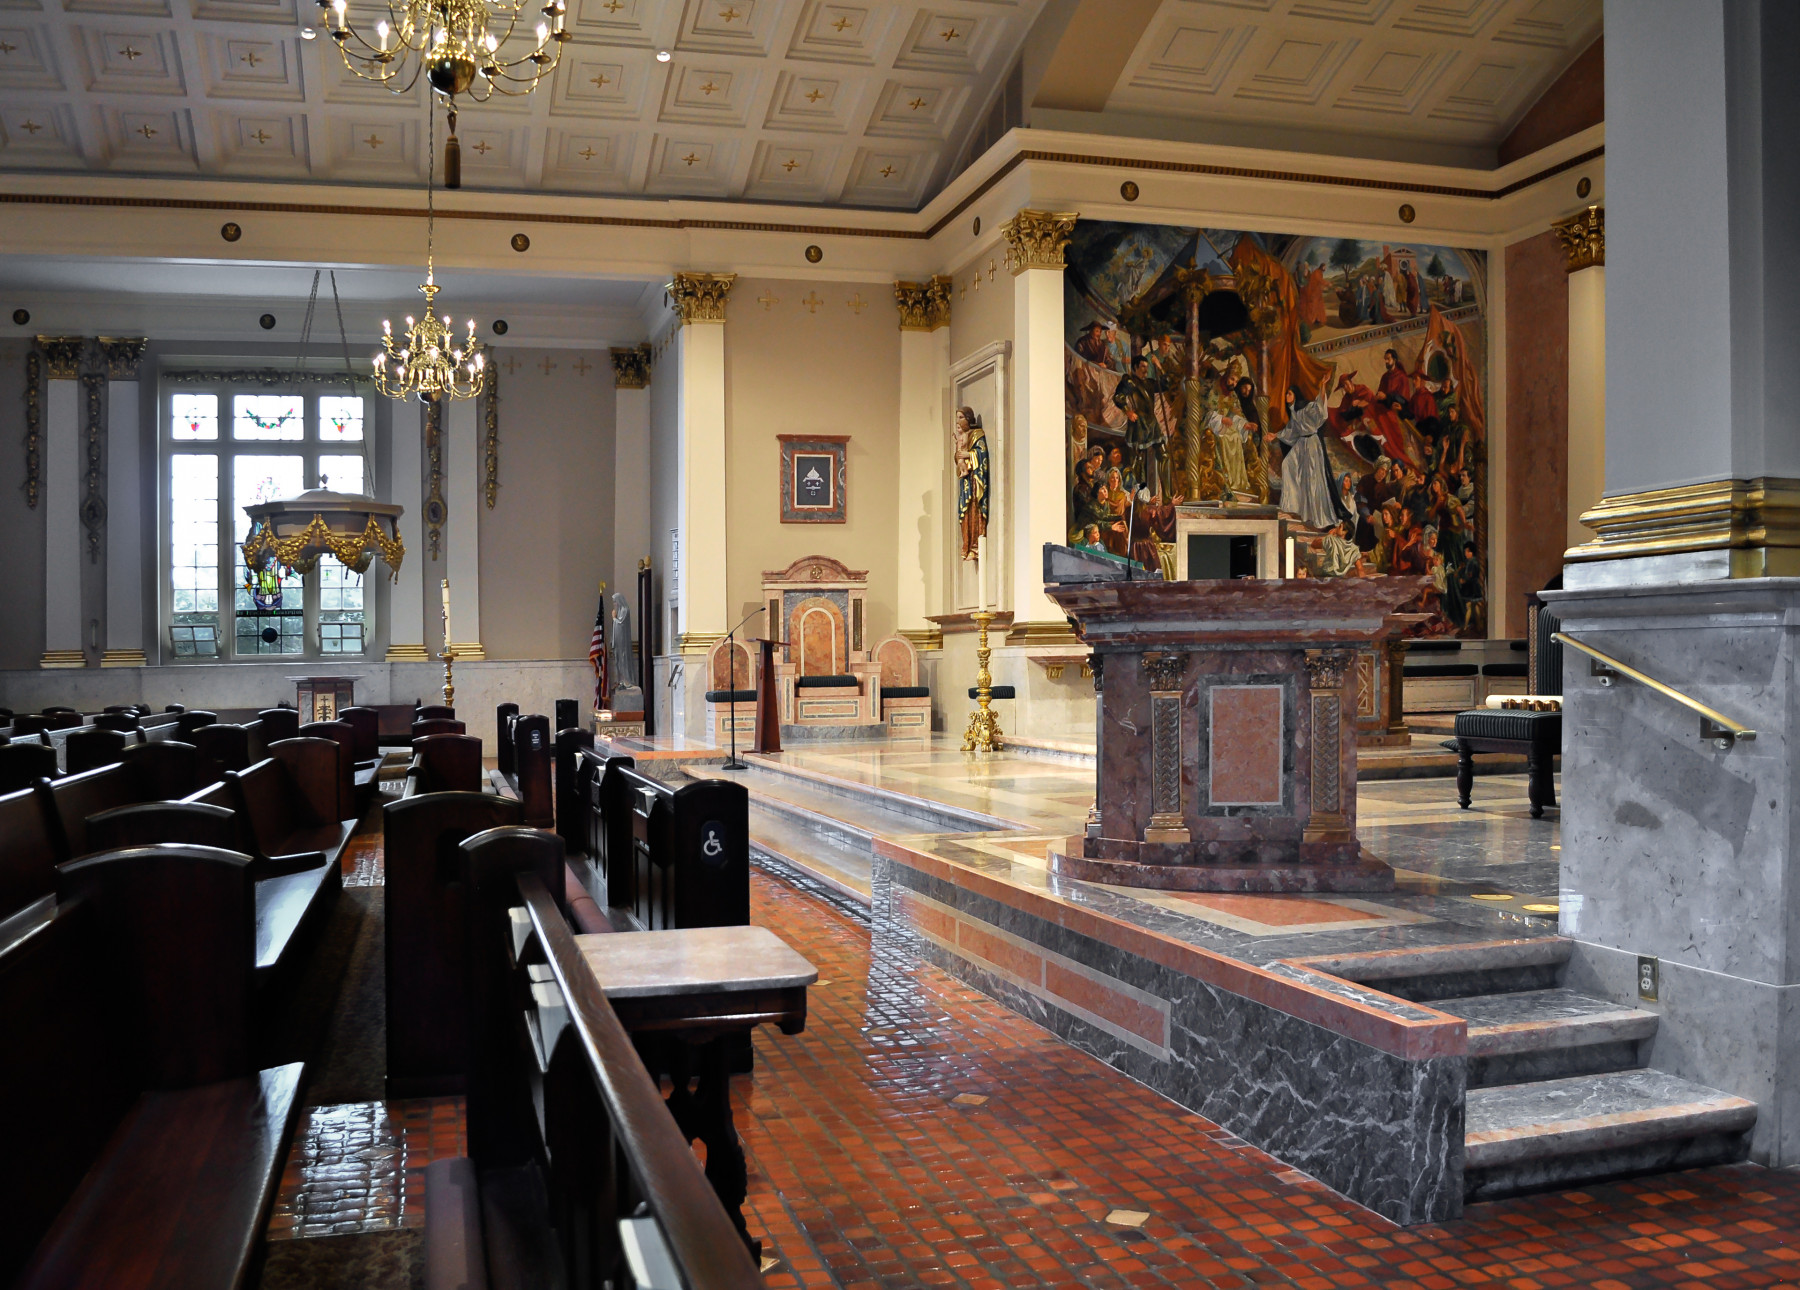 St. Catharine of Siena Allentown side view